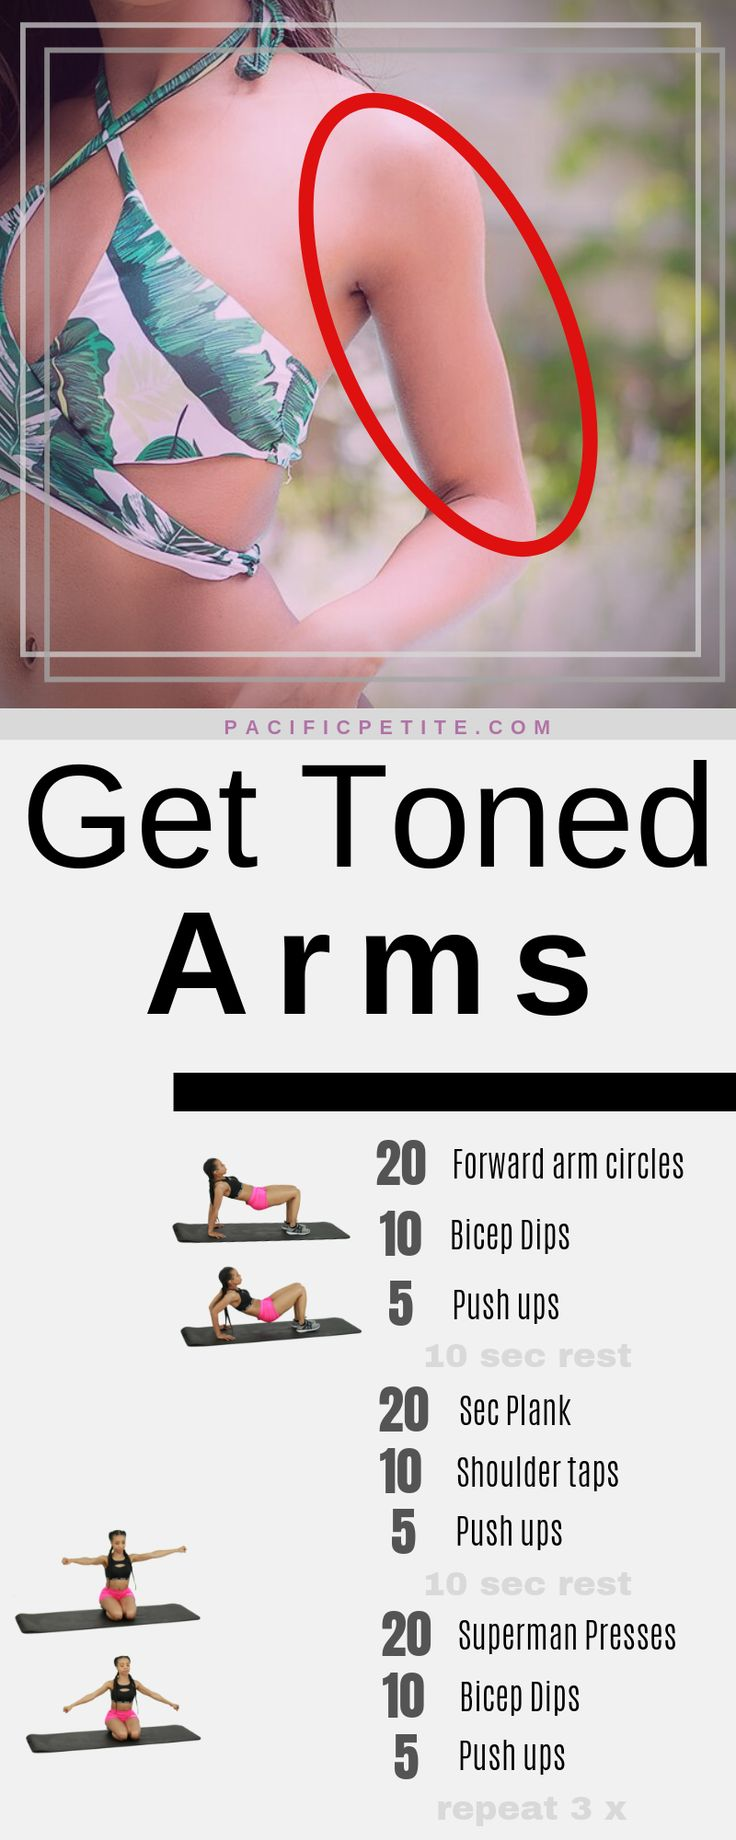 workout plan to tone arms at home, no equipment needed for women to get rid of flabby arms